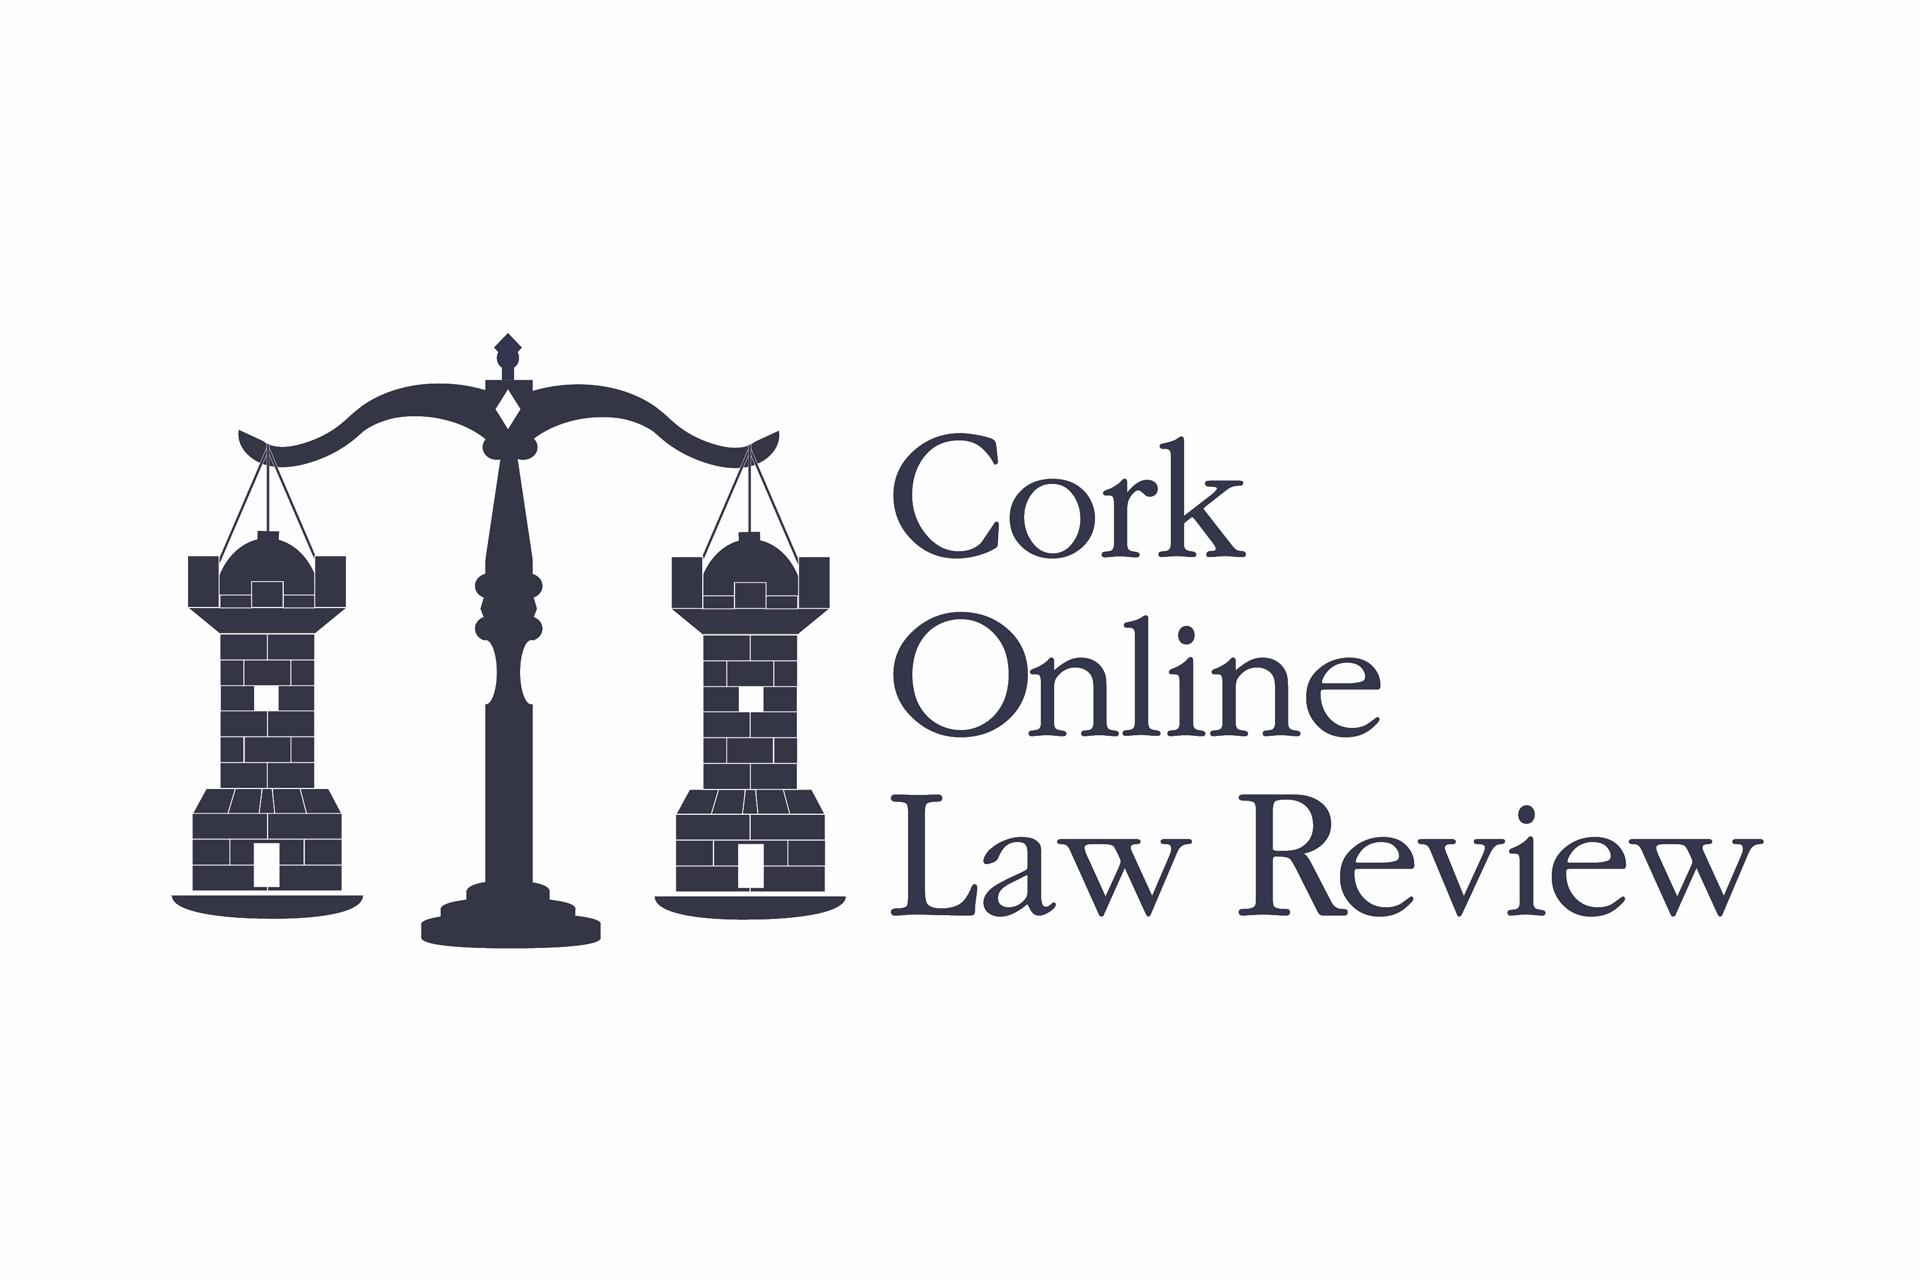 The Cork Online Review